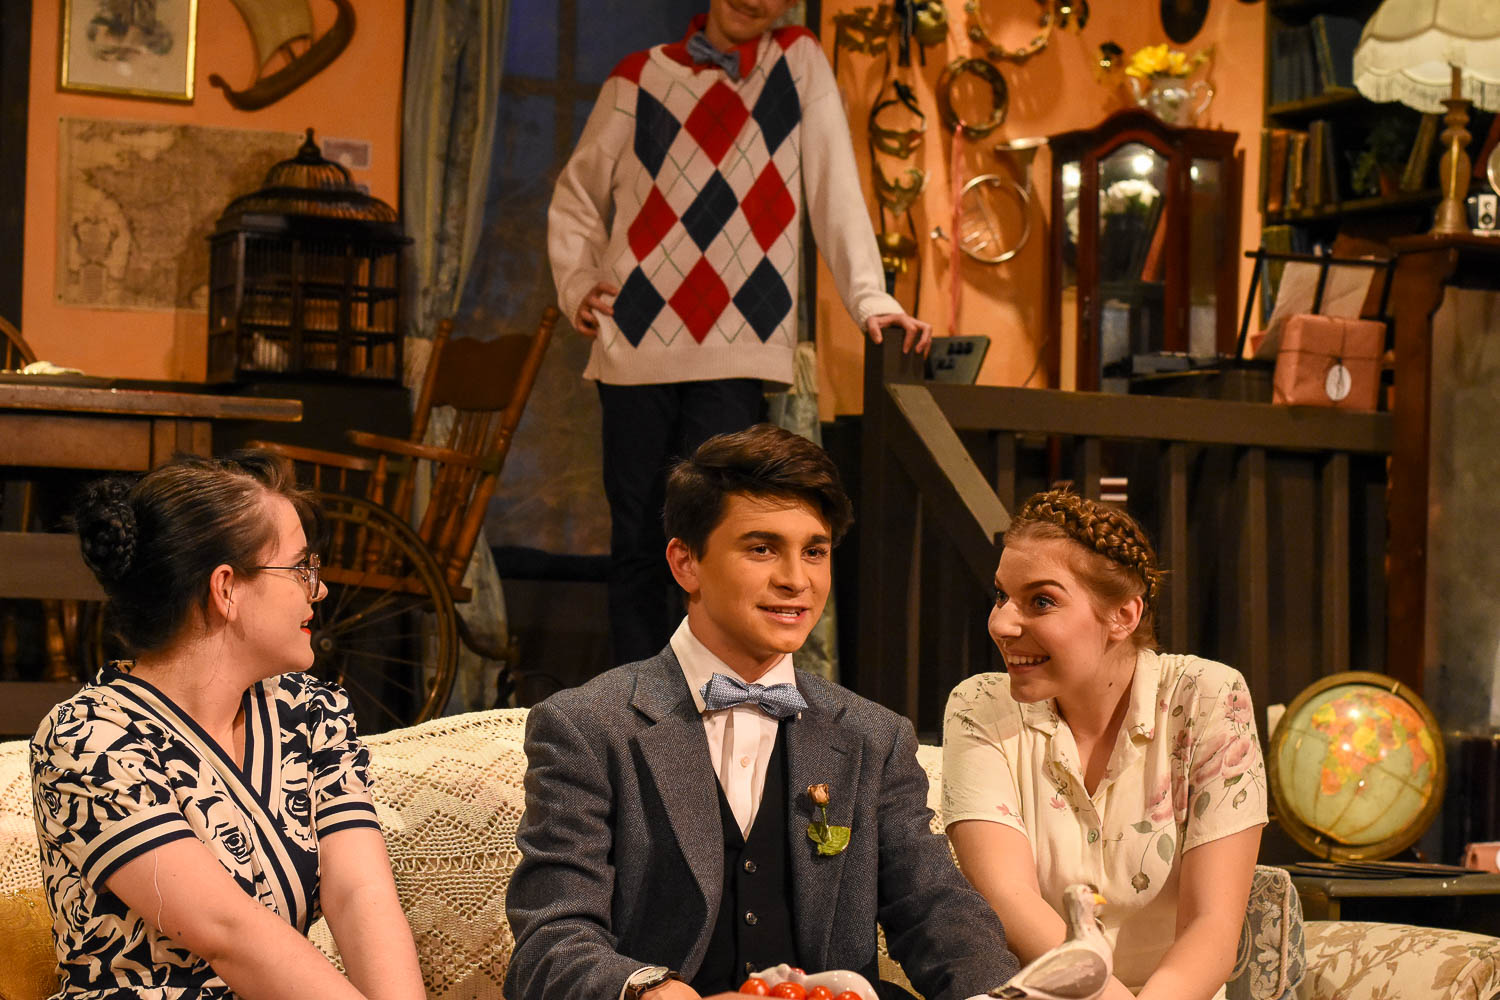 In this scene from You Can't Take it With You, Tony Kirby (Matthew Duplissey) meets Penny Sycamore (Allison Nicolai) and Essie Carmichael (Reagan Barclay), with Ed Carmichael (Connor Keithley) watching attentively.